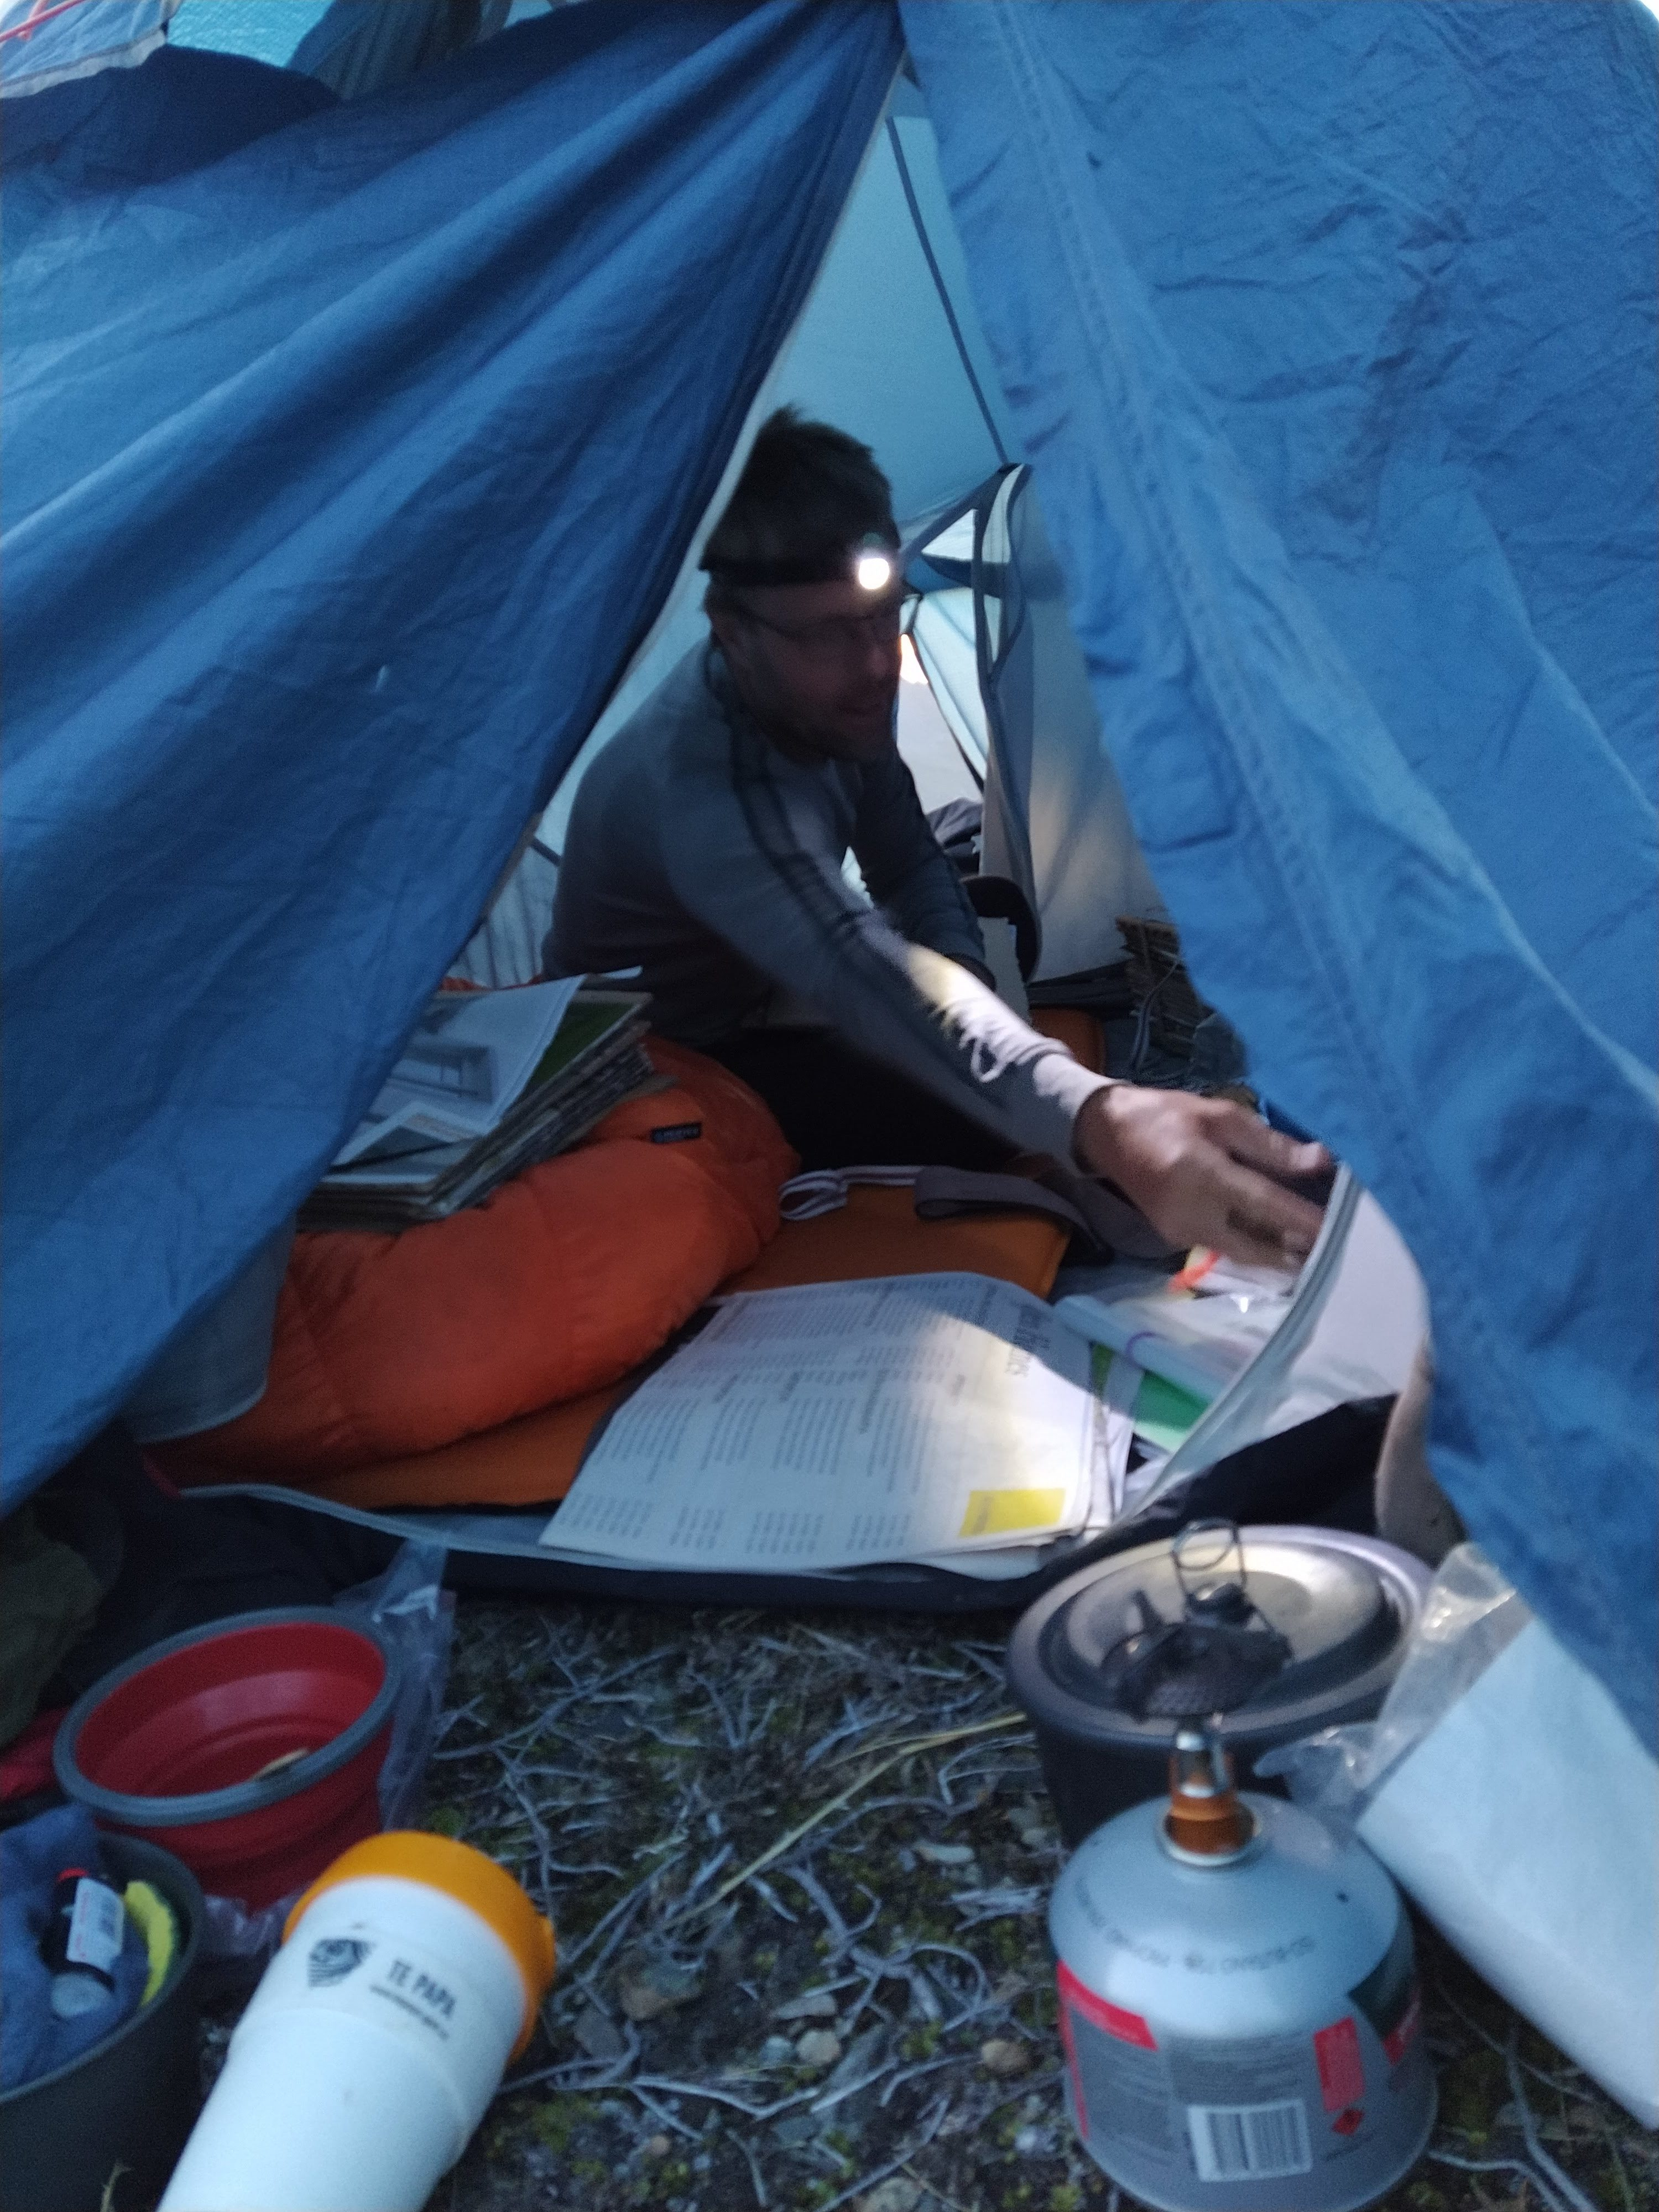 A man looking at maps and charts with a light on his head inside a tent with cooking gear in the foreground